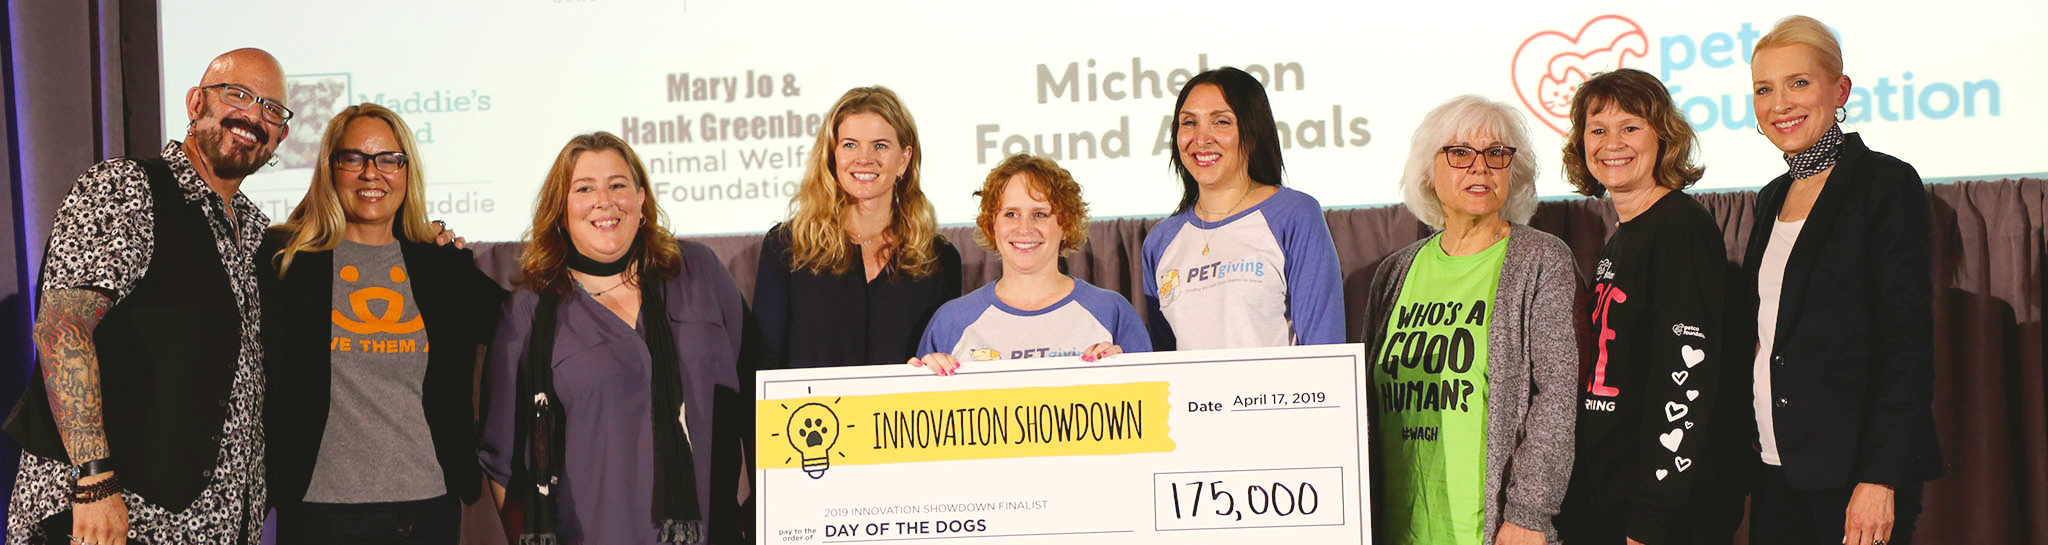 DesignGood and PetGiving Win at Petco Innovation Showdown